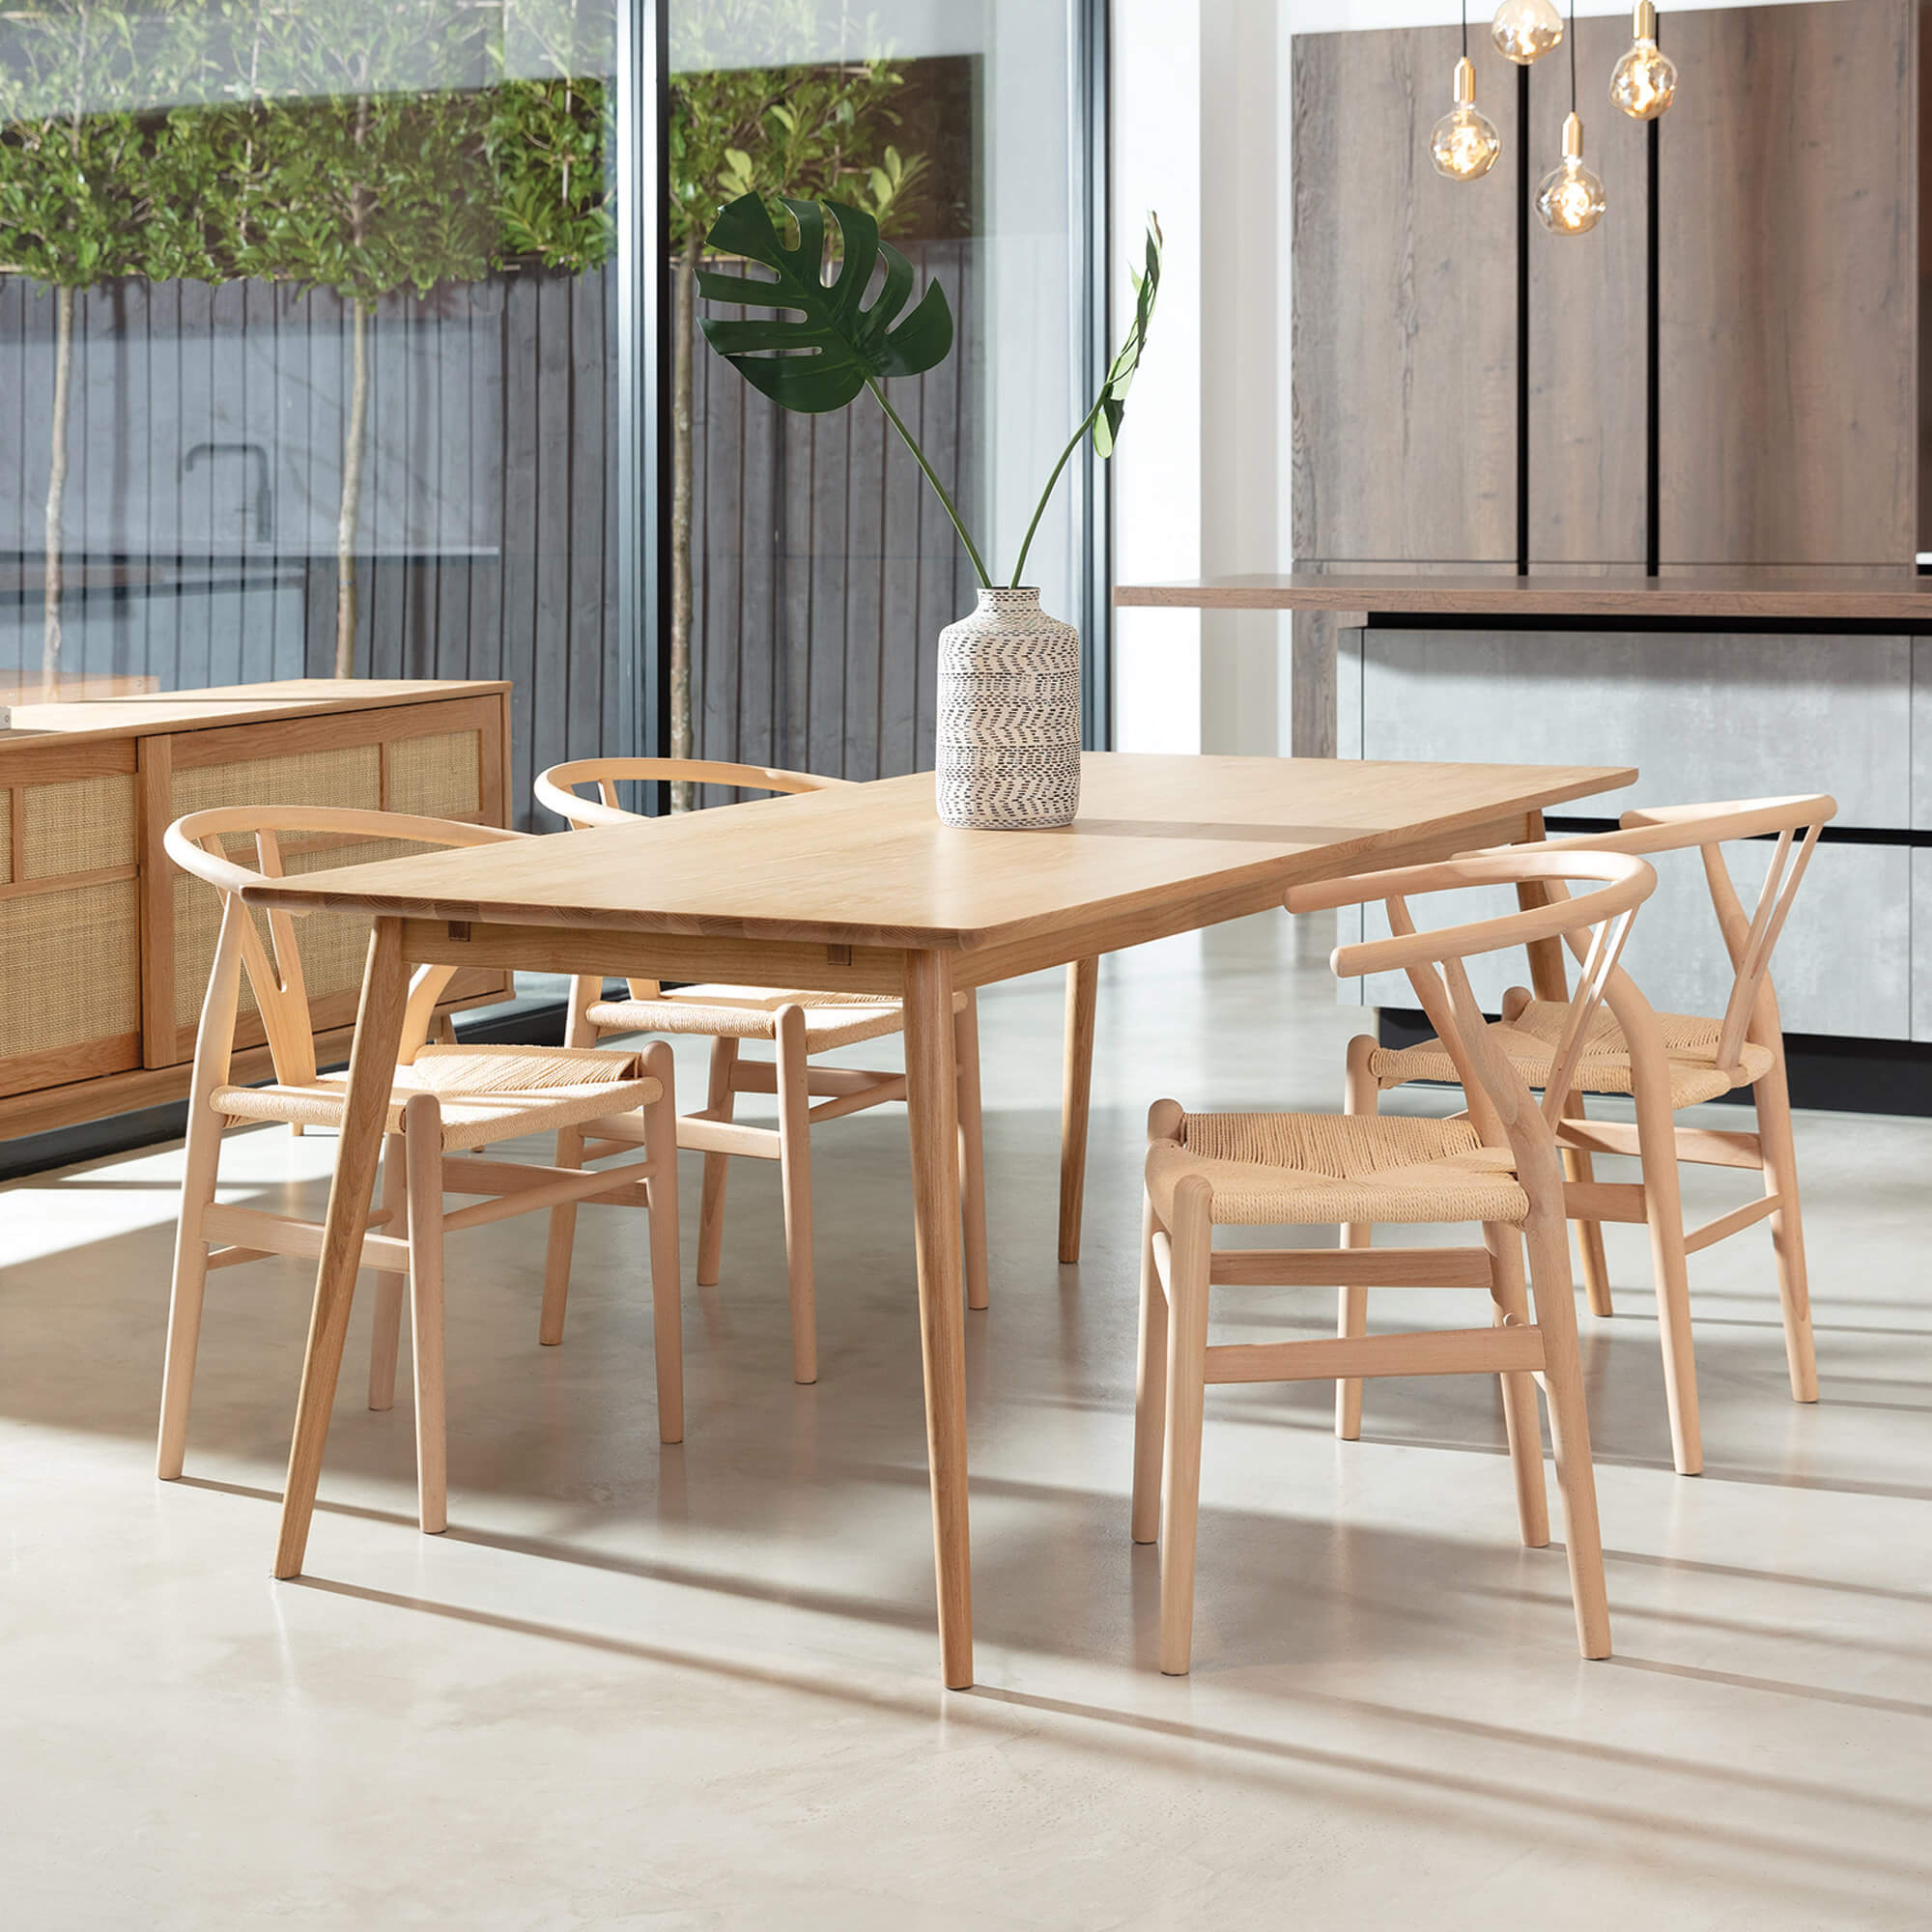 Larvik White Oak 9cm Dining Table & 9 Chairs